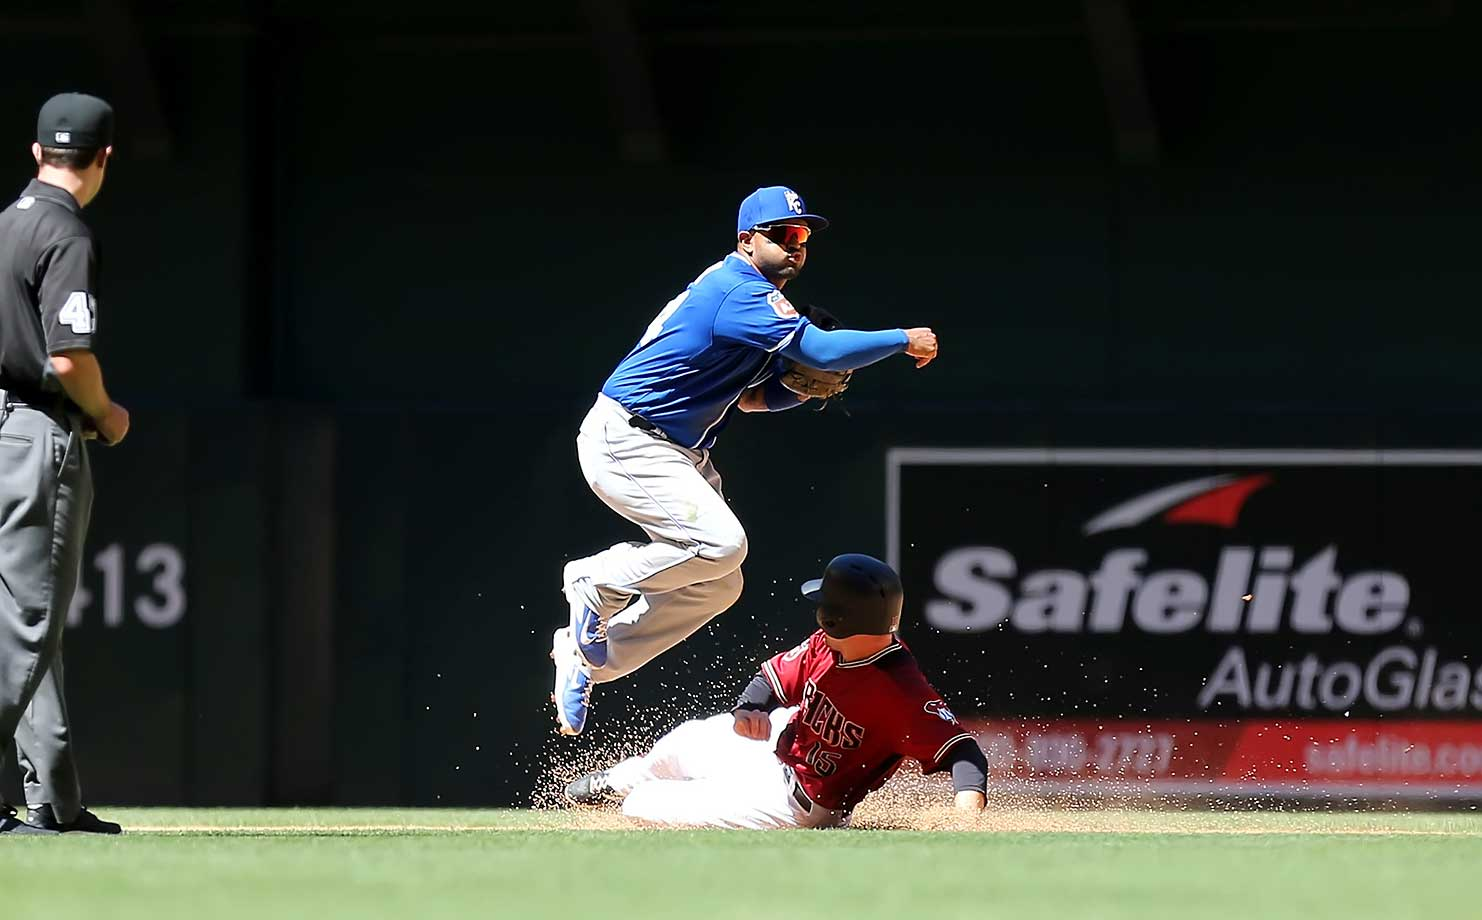 Royals second baseman Christian Colon completes a double play after forcing out Phil Gosselin of Arizona.